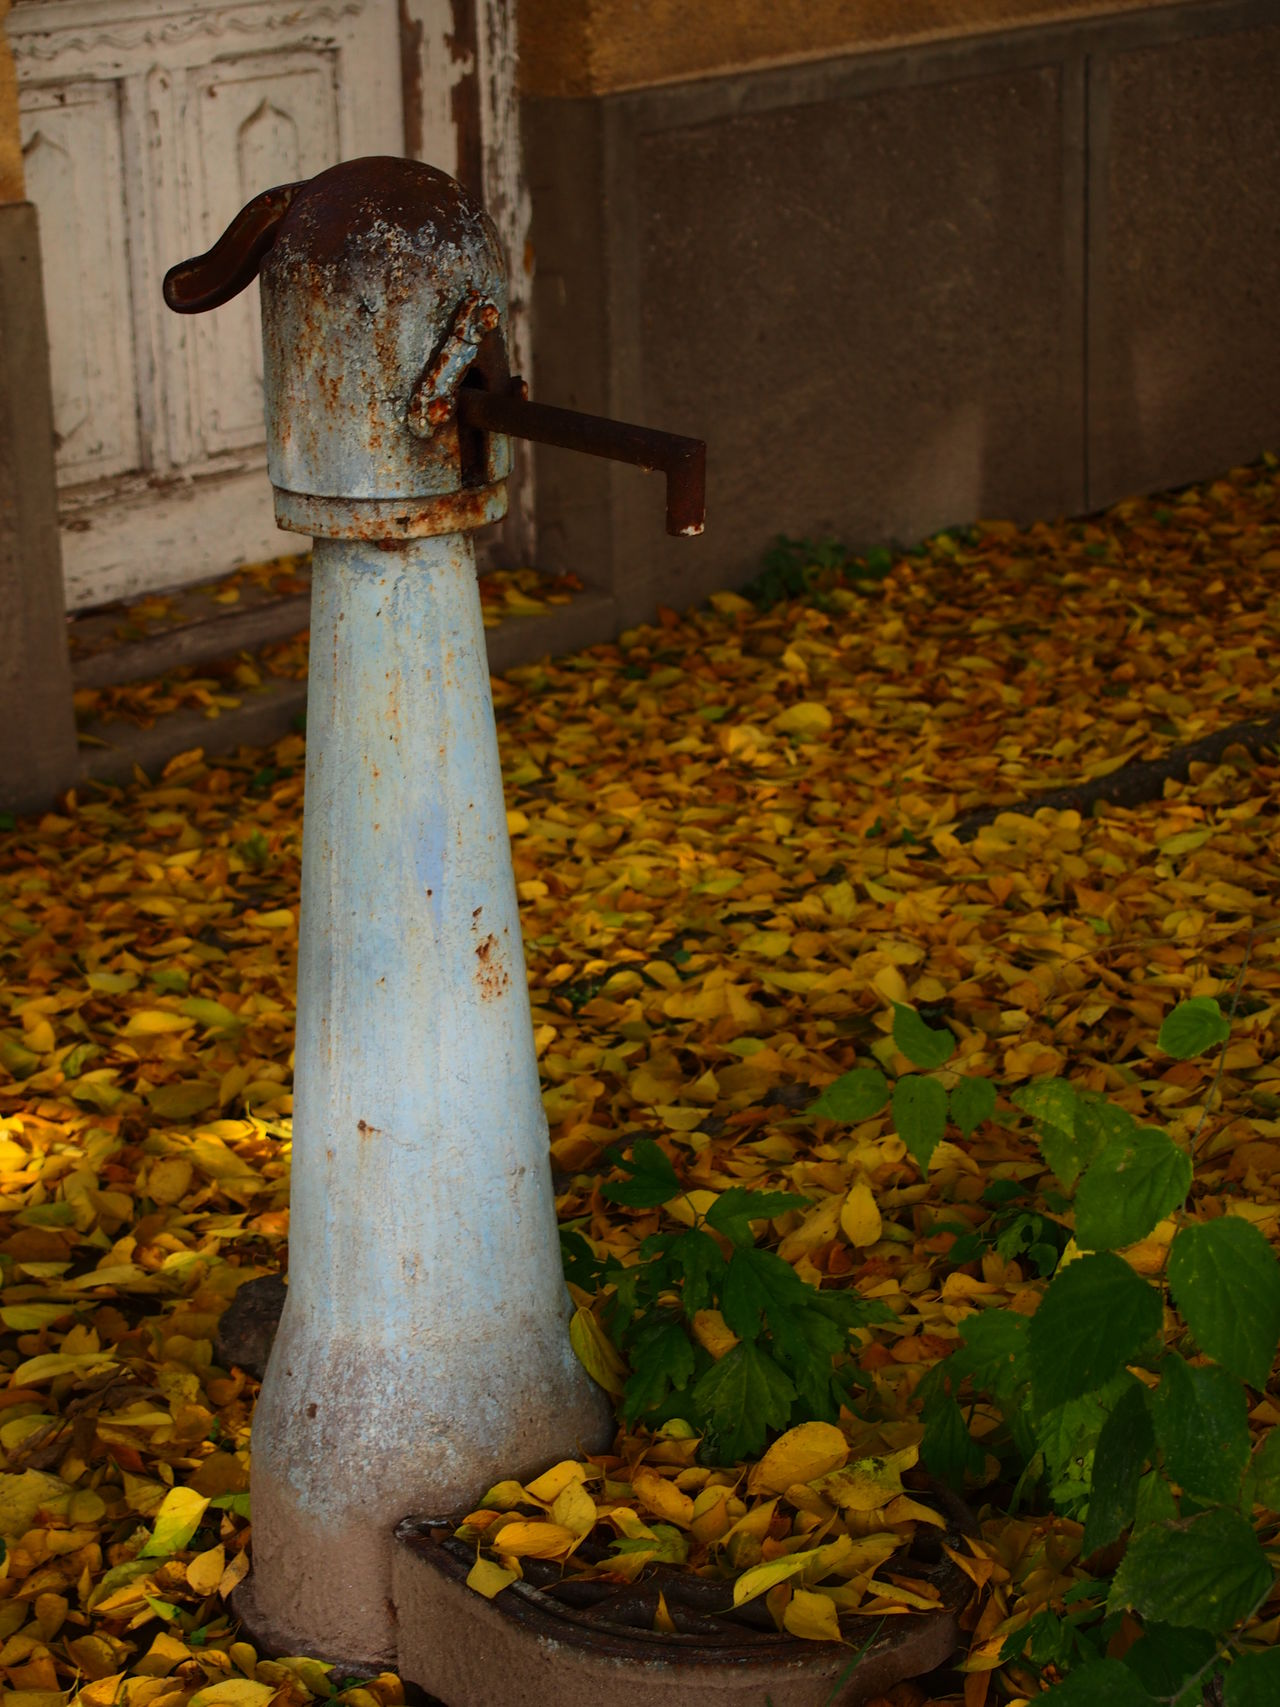 Autumn Autumn Day Fountain Leaf Madocsa Nature No People Outdoors Pit Pump Village Village Life Water